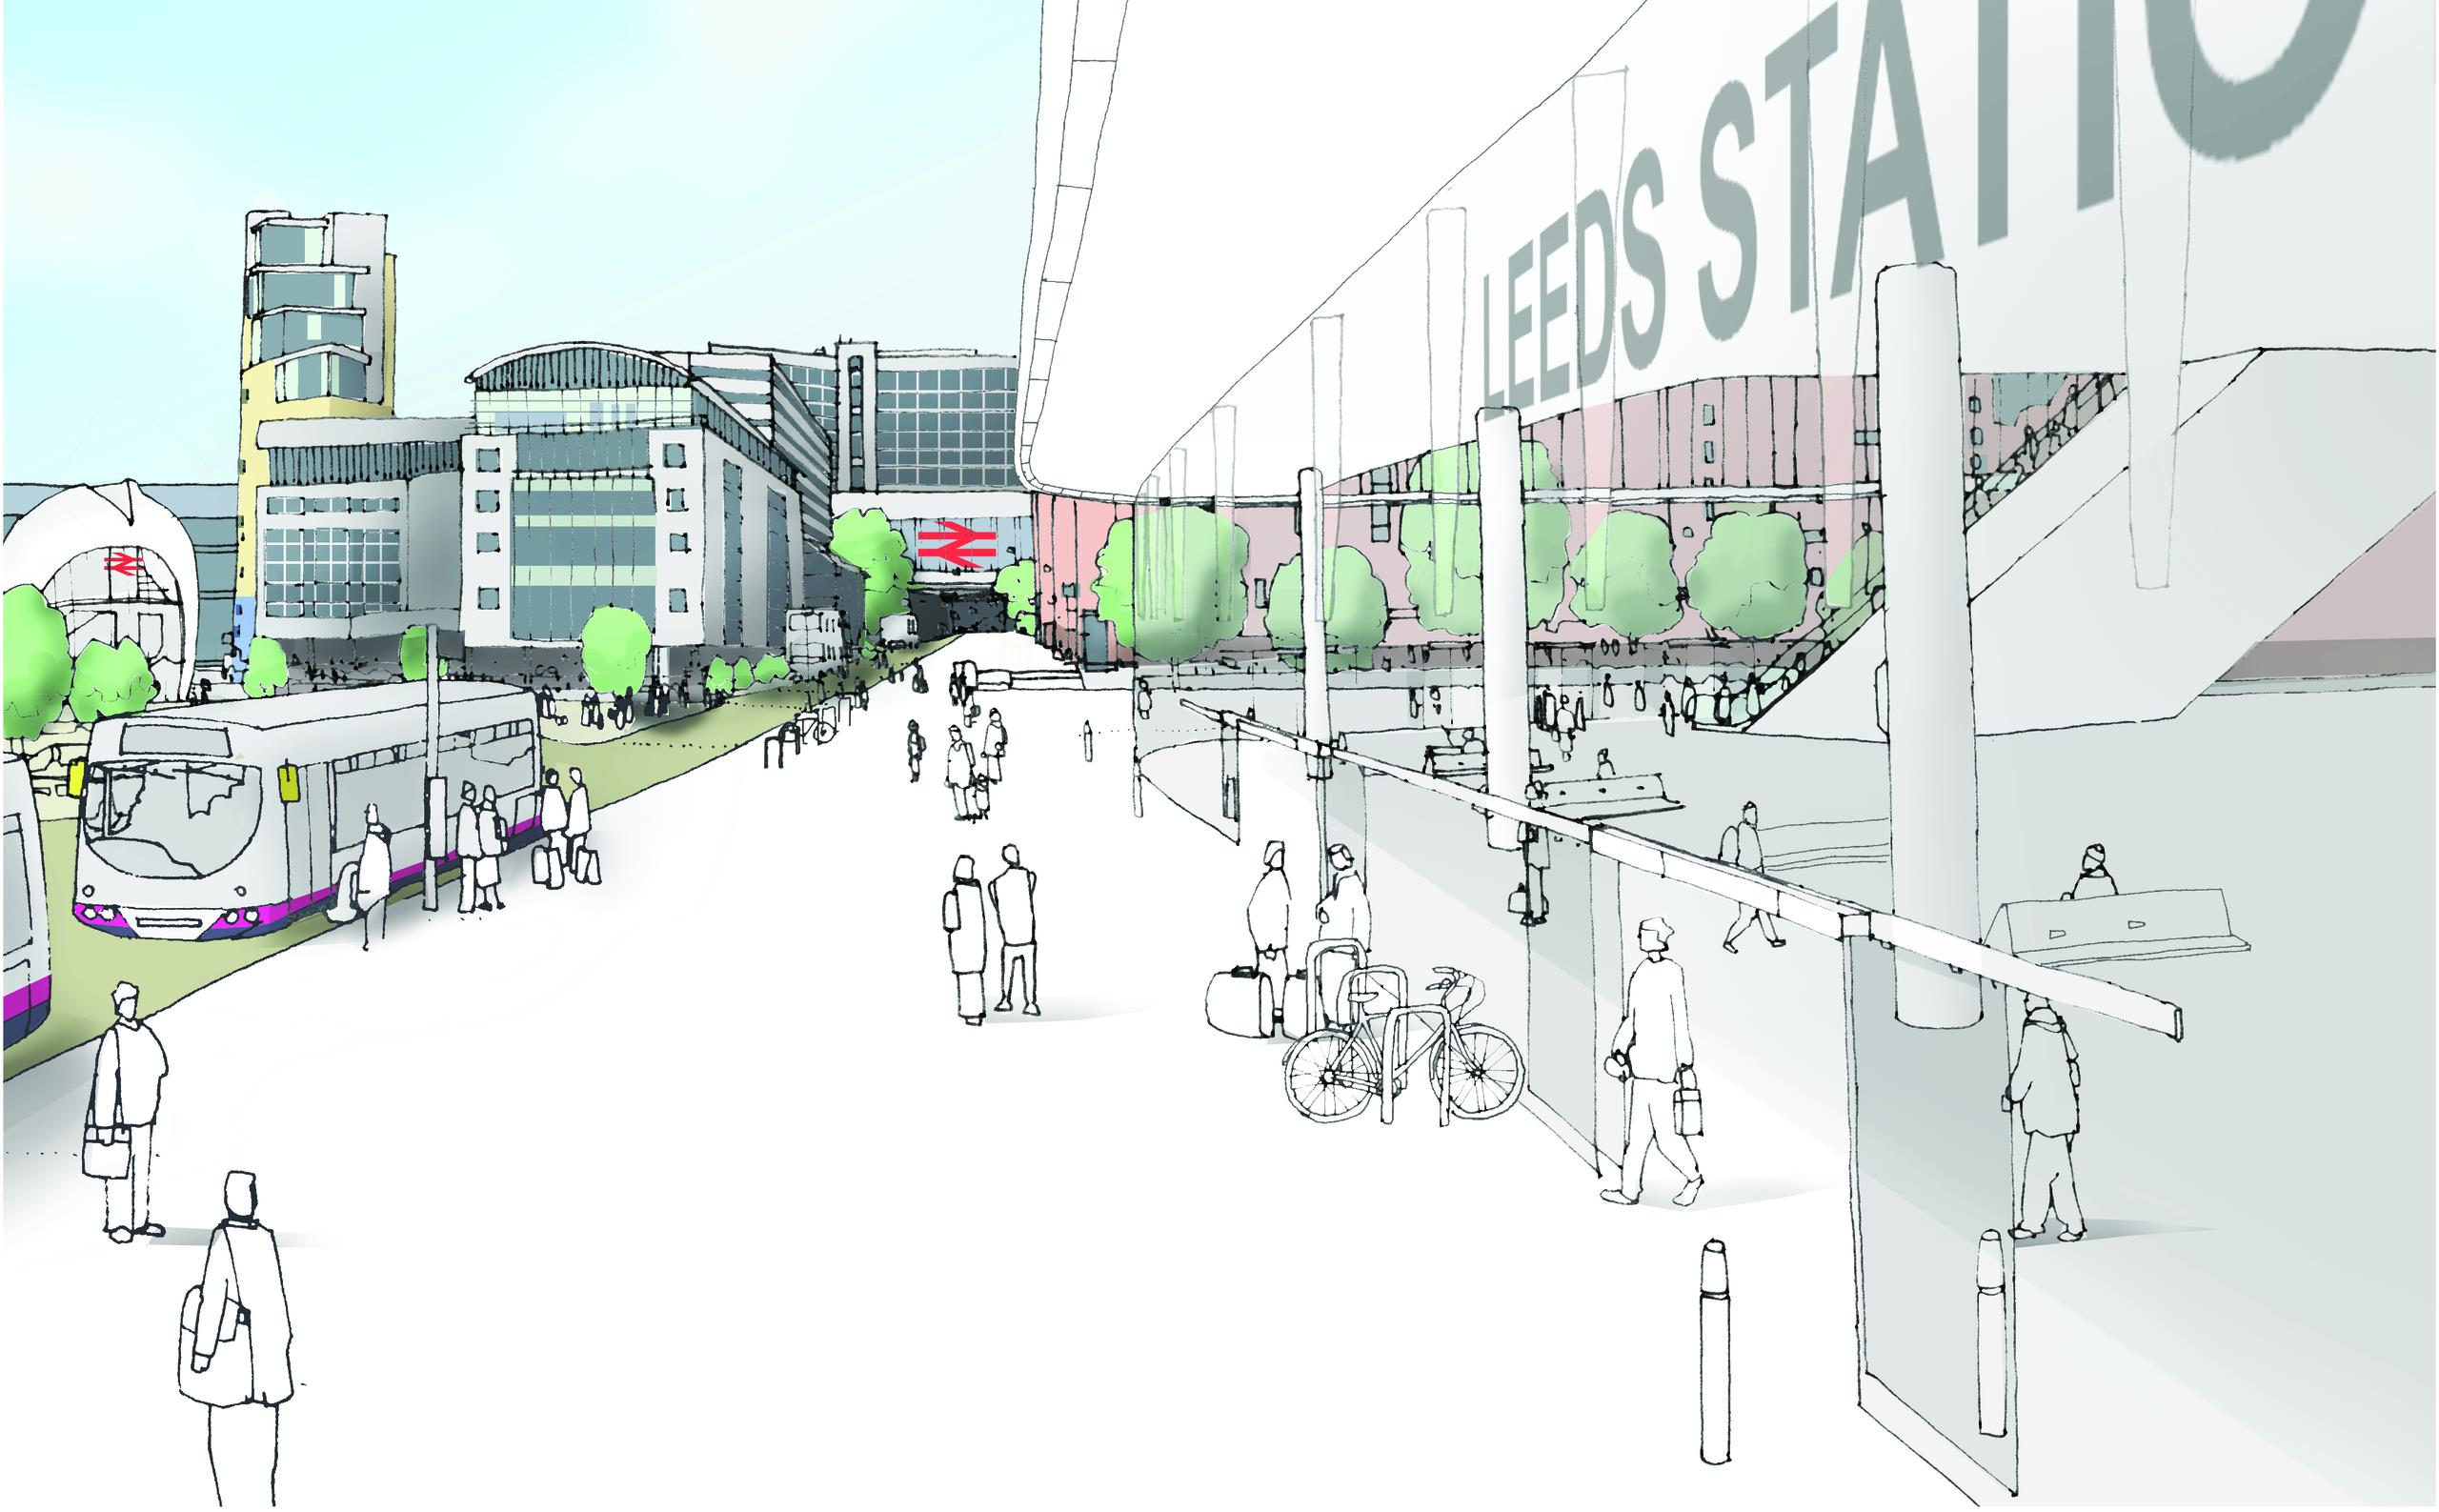 Design of Leeds Station once HS2 has been completed